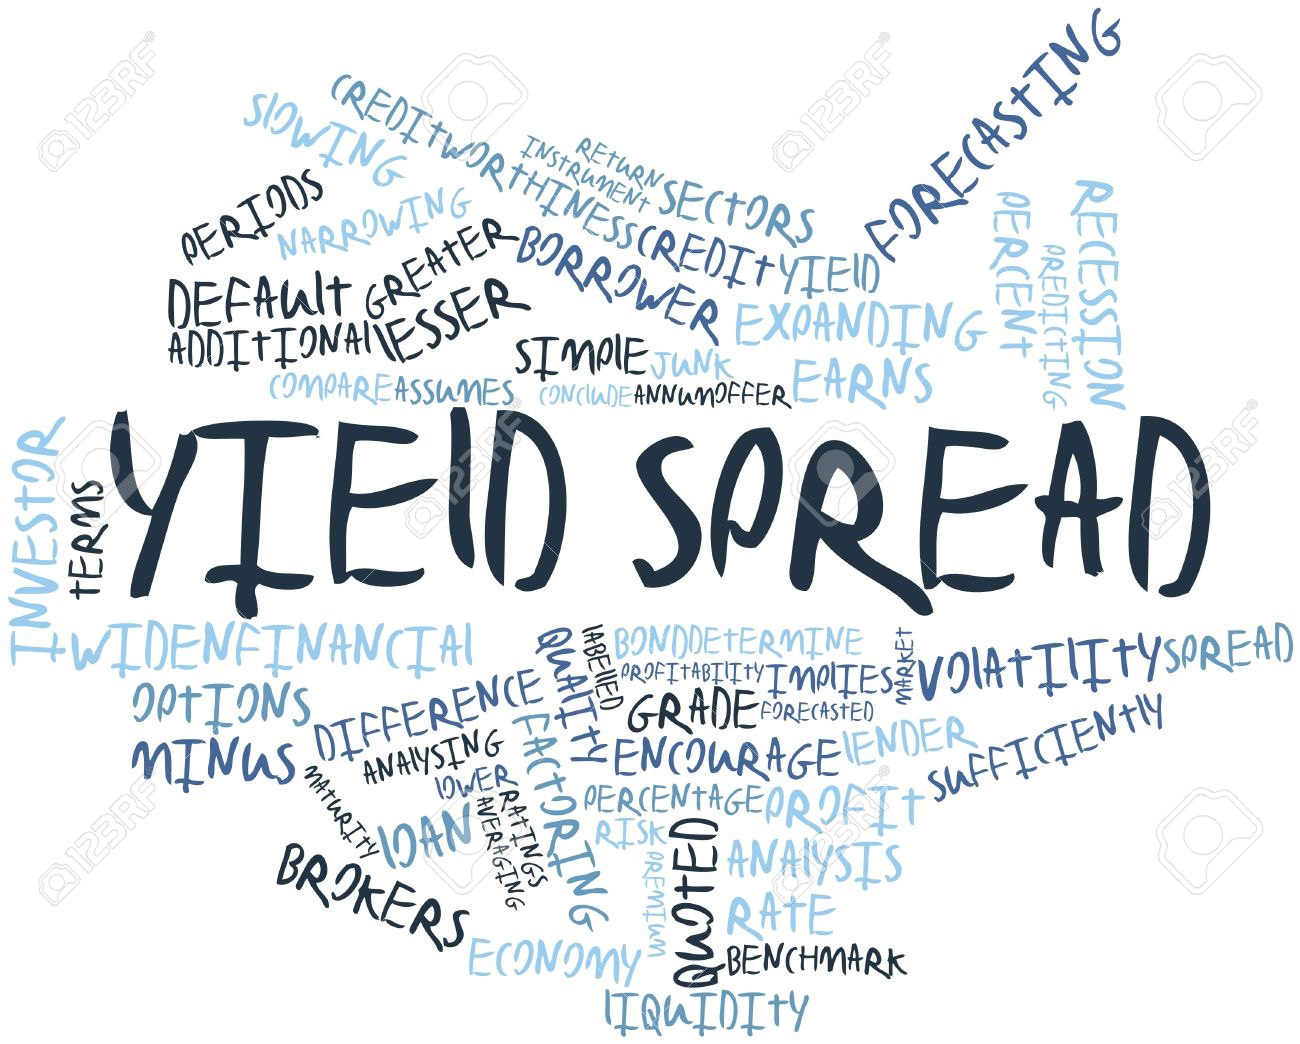 Abstract Word Cloud For Yield Spread With Related Tags And Terms.